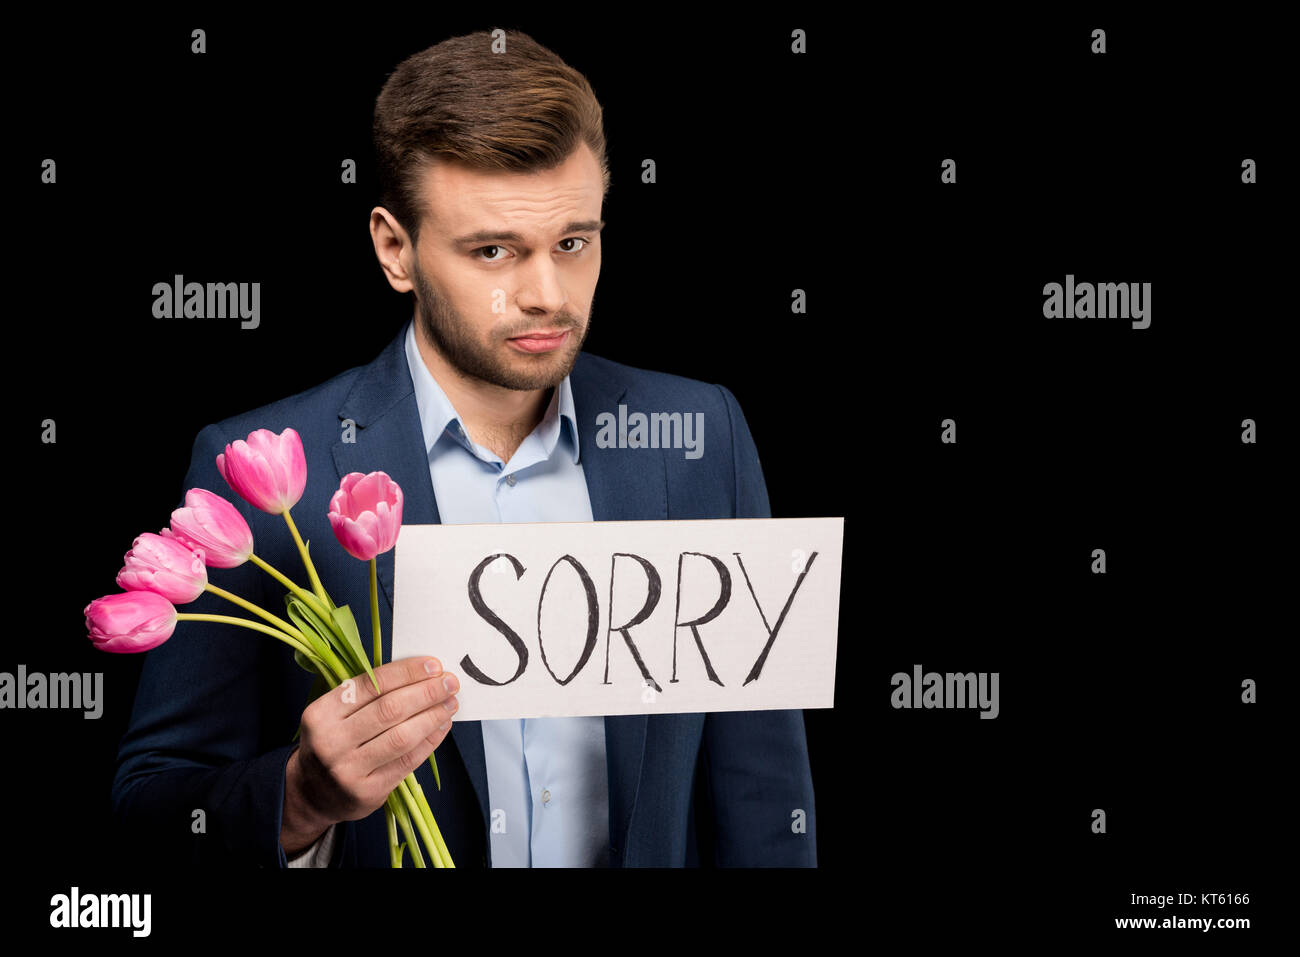 Ashamed young man with tulips and sorry sign looking at camera - Stock Image